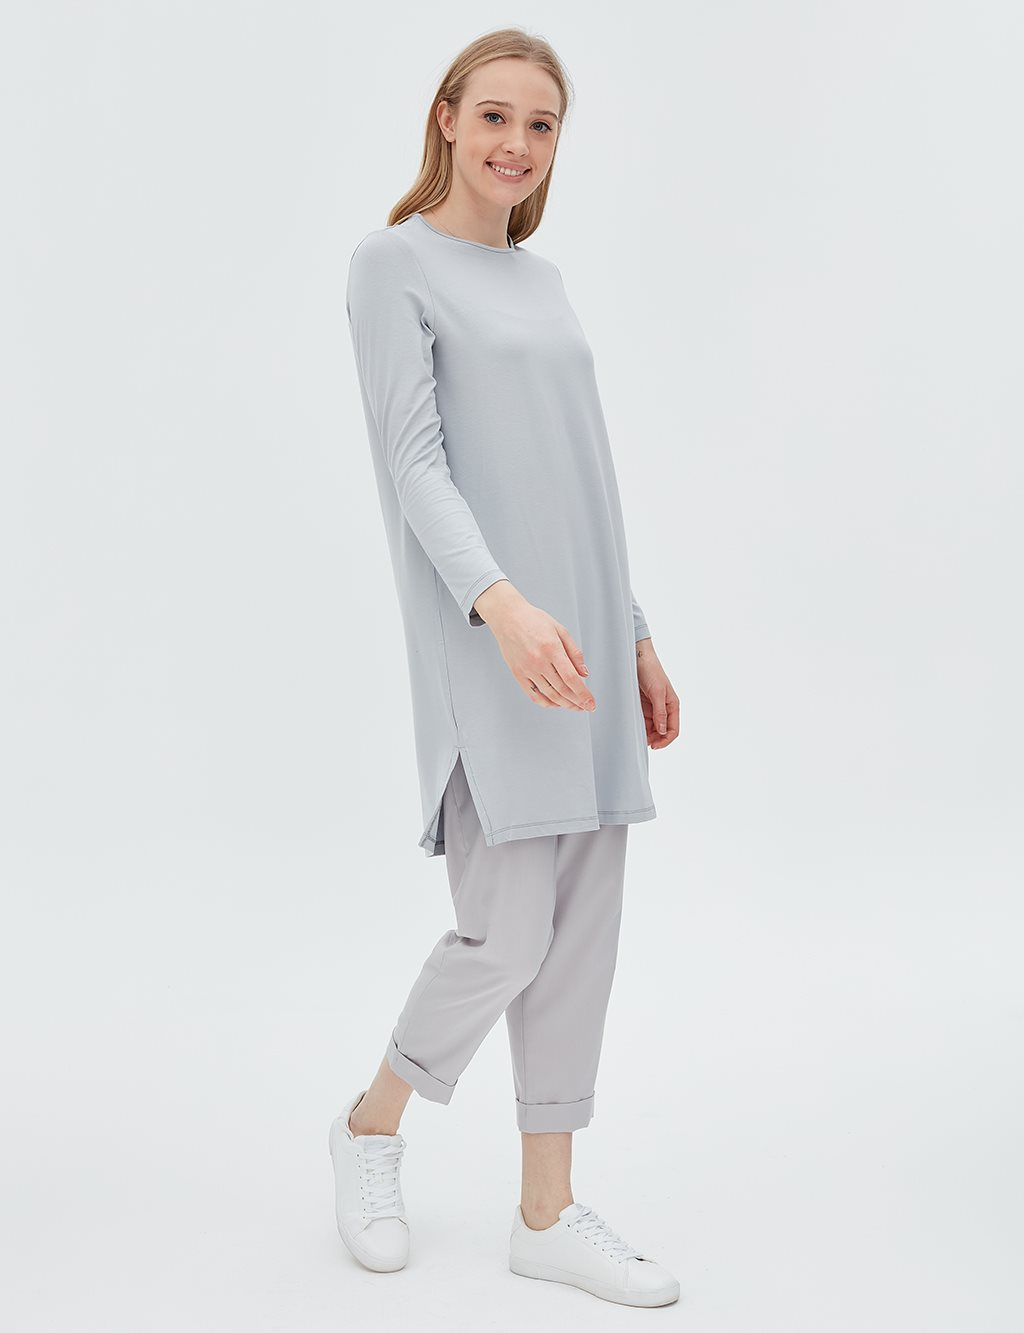 Basic Blouse Grey SZ 10506